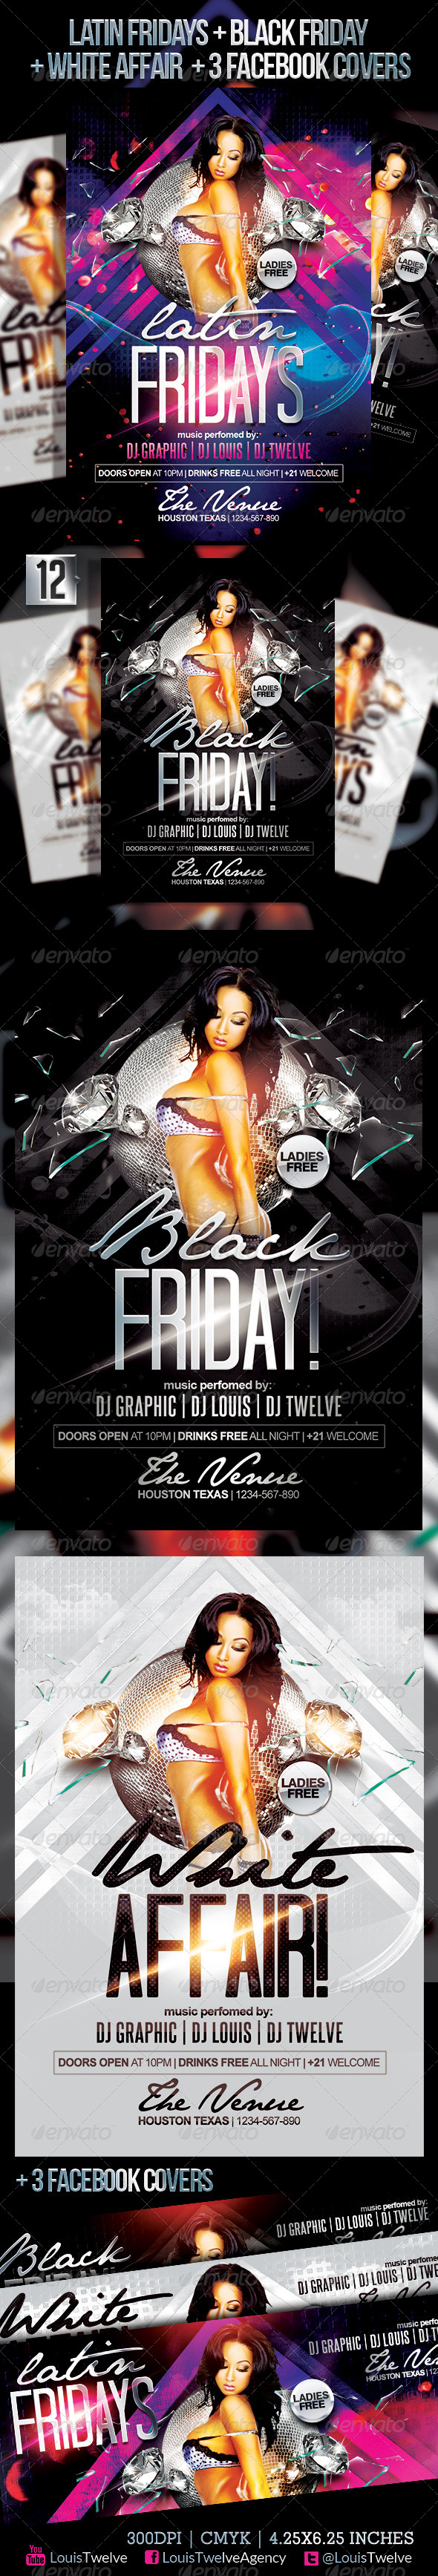 GraphicRiver Latin Fridays & White Affair Flyer & FB Covers 5626026